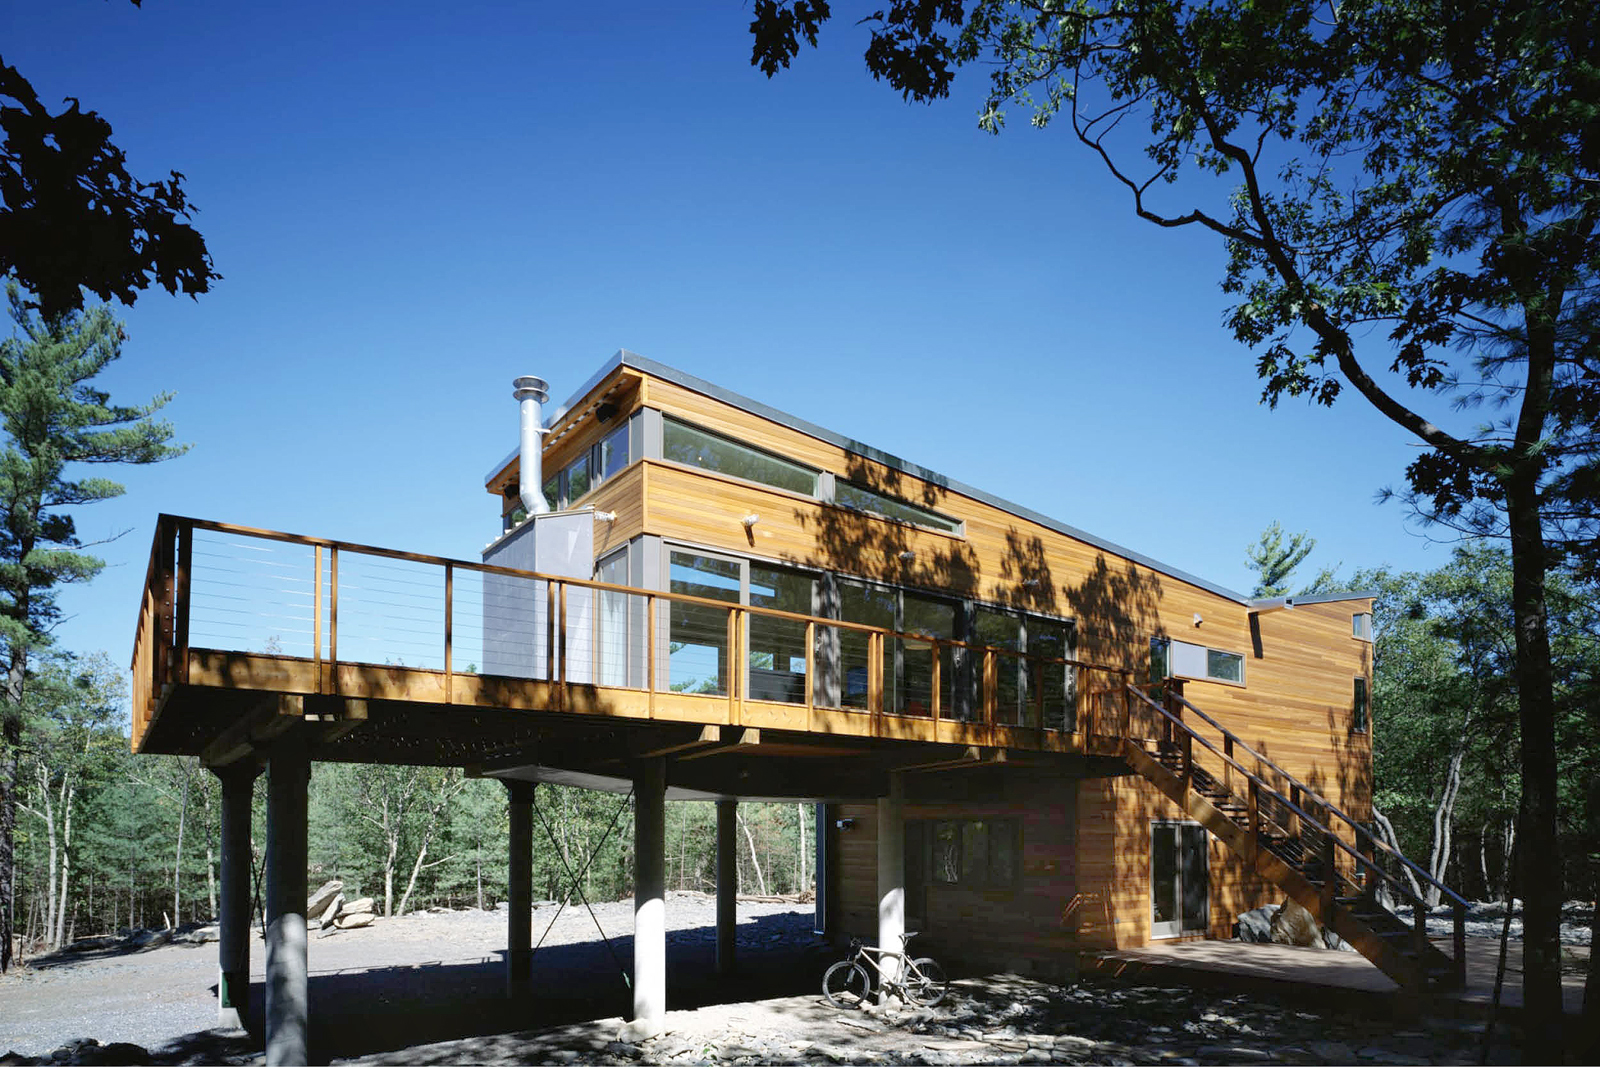 03-res4-resolution-4-architecture-modern-modular-home-prefab-house-mountain-retreat-exterior.jpg